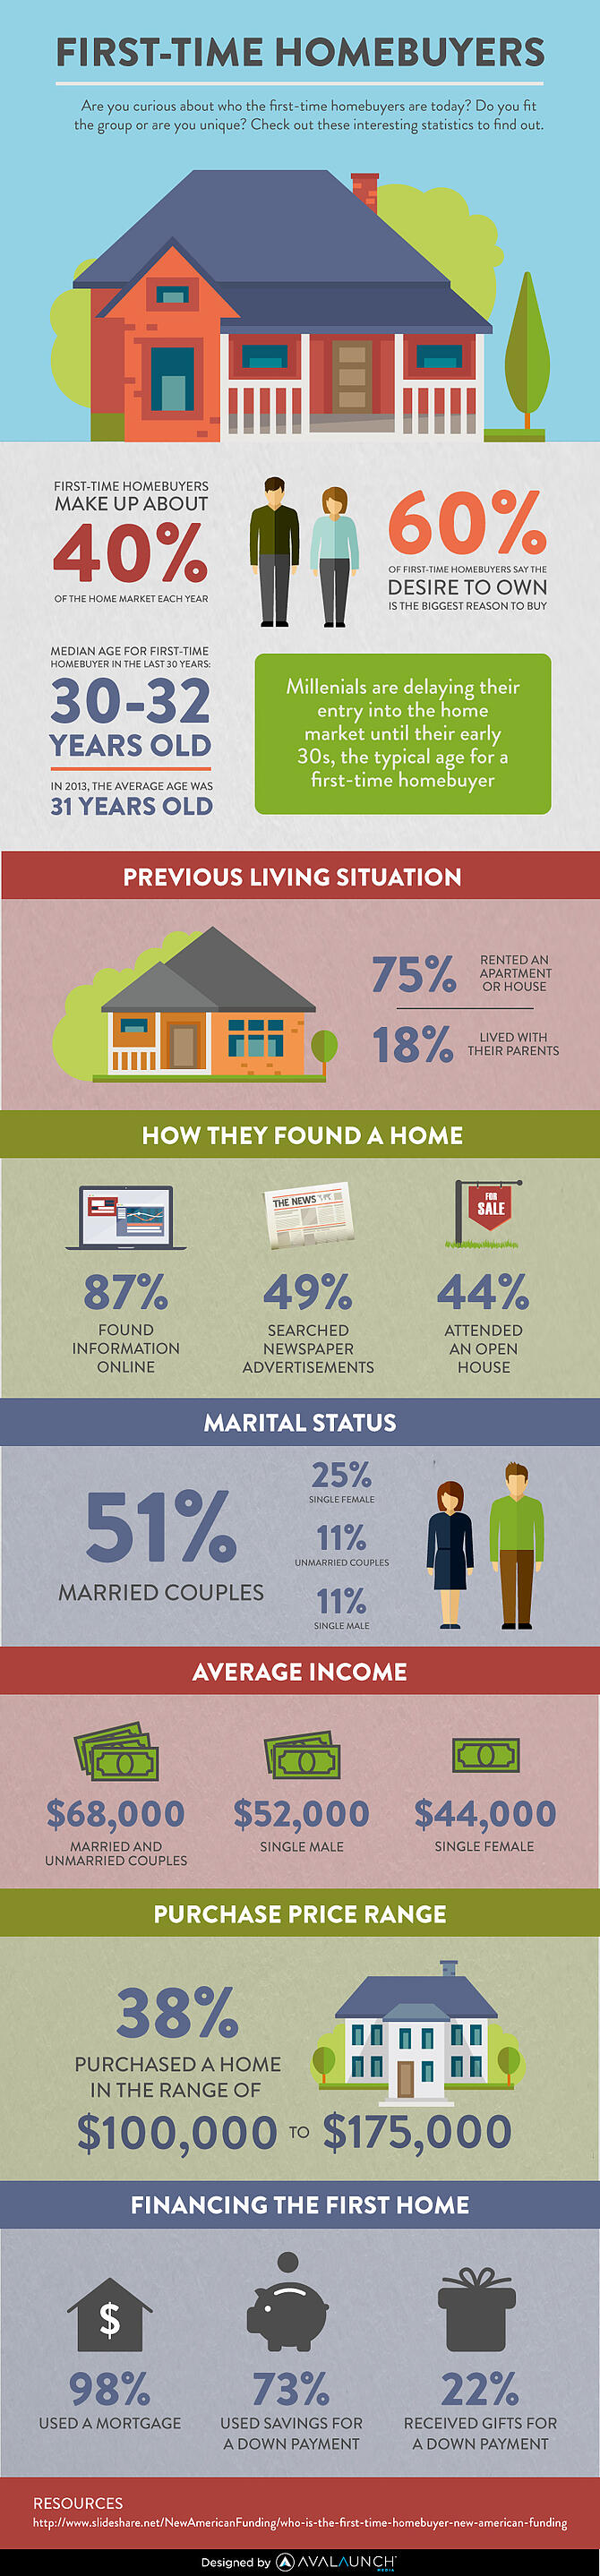 Unbranded_First-Homebuyers (1)